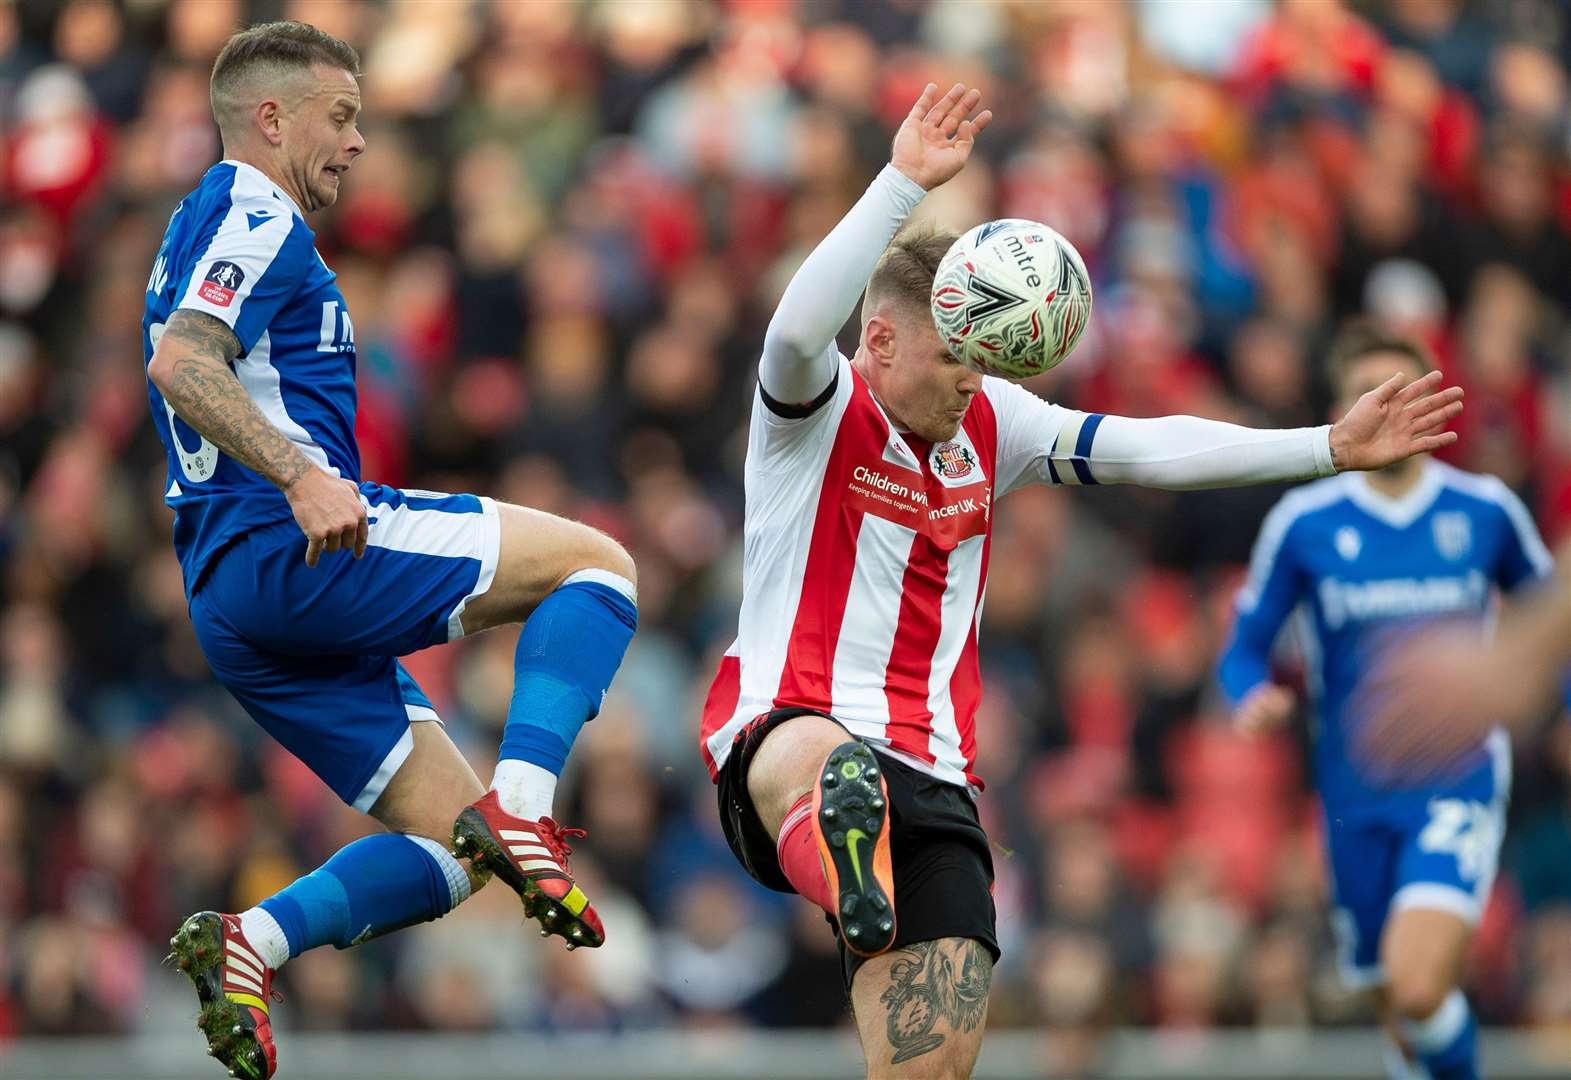 No complacency for Imps visit